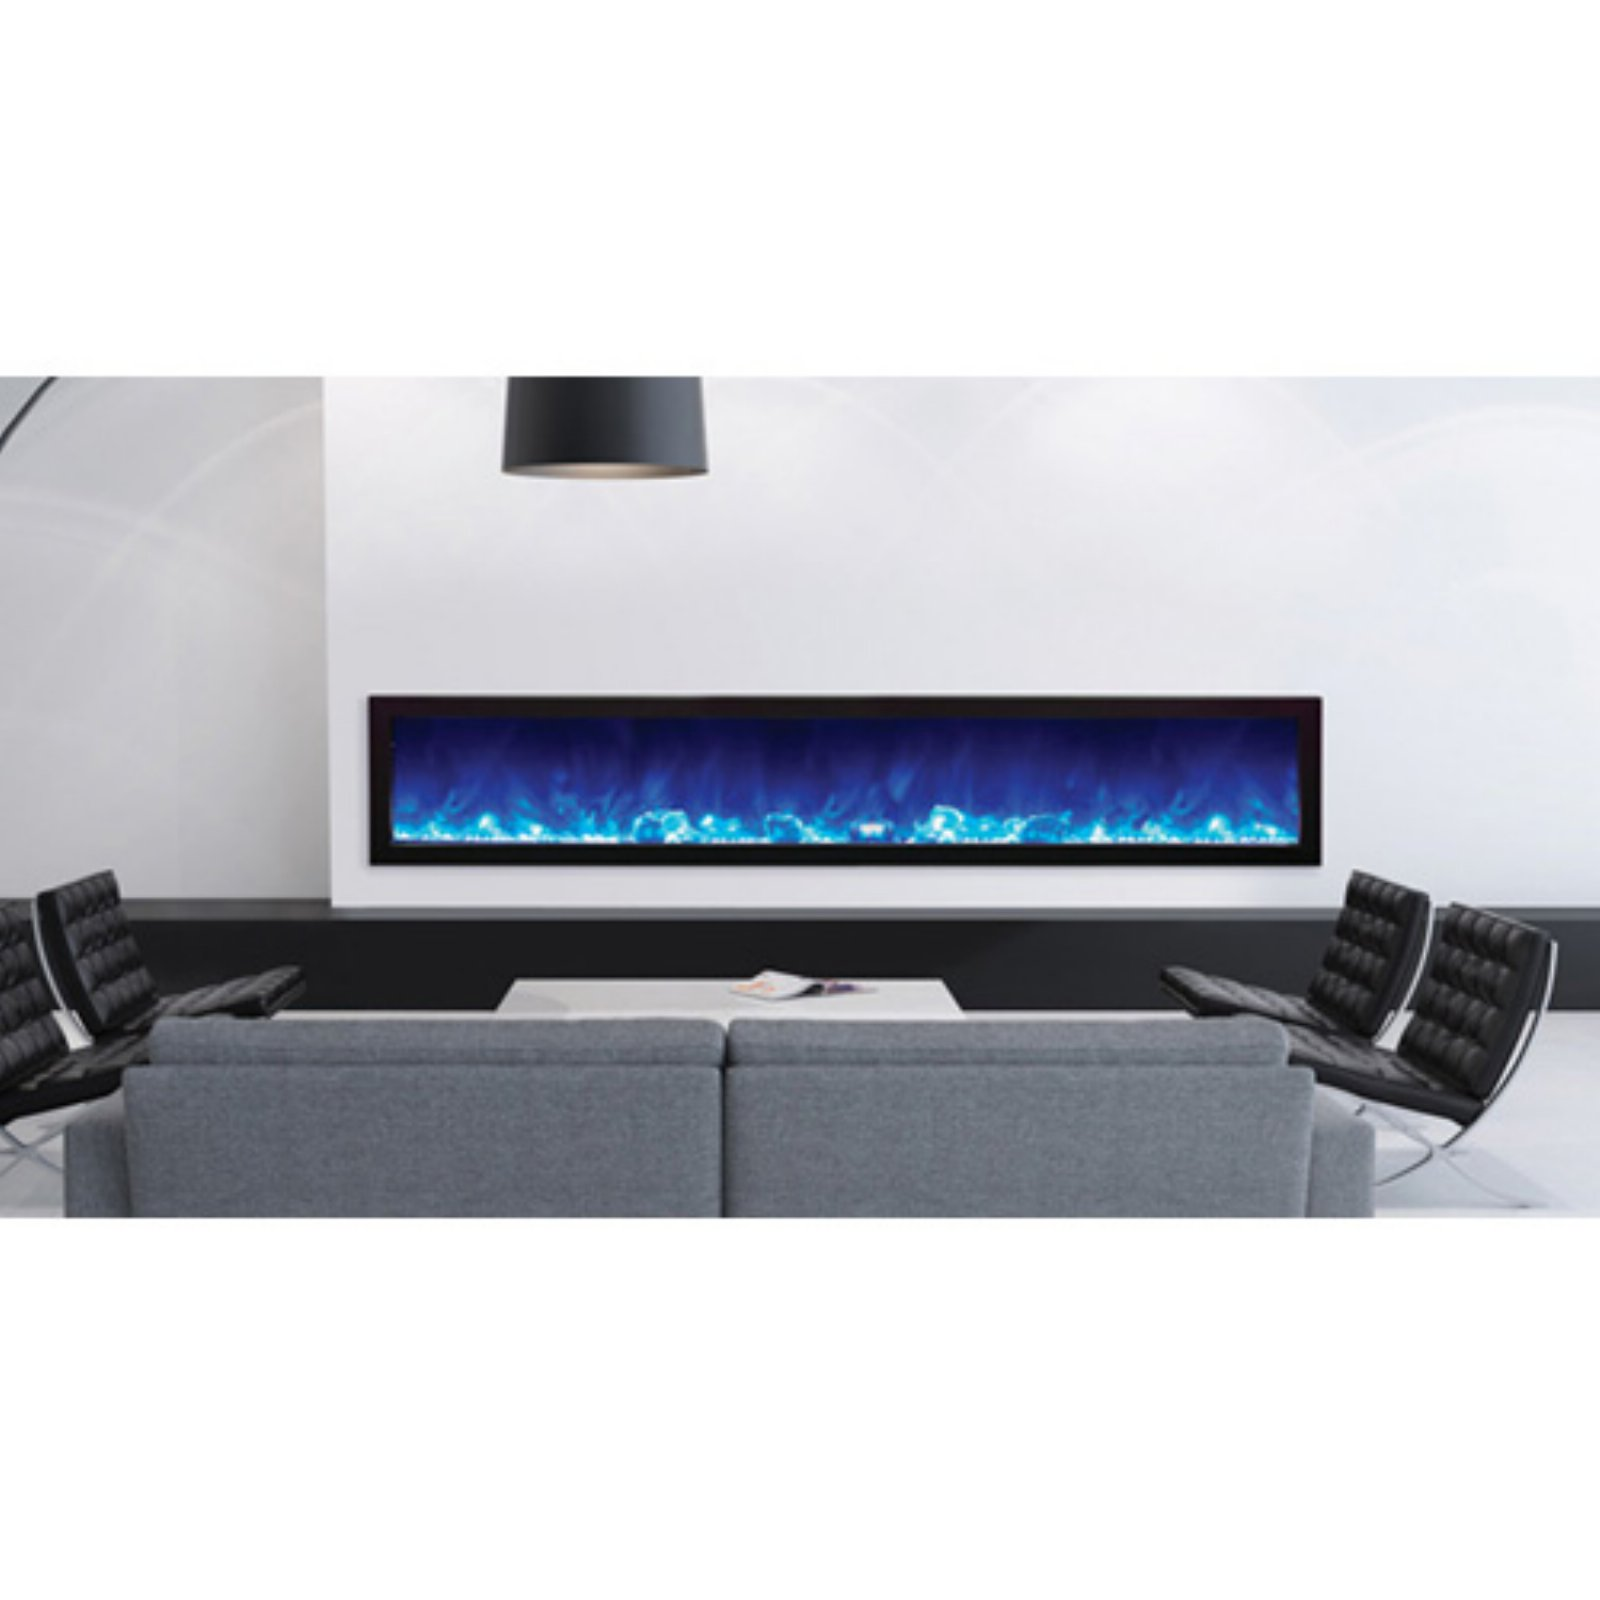 Amantii Panorama Slim Electric Wall Mount Fireplace with Black Surround by Amantii